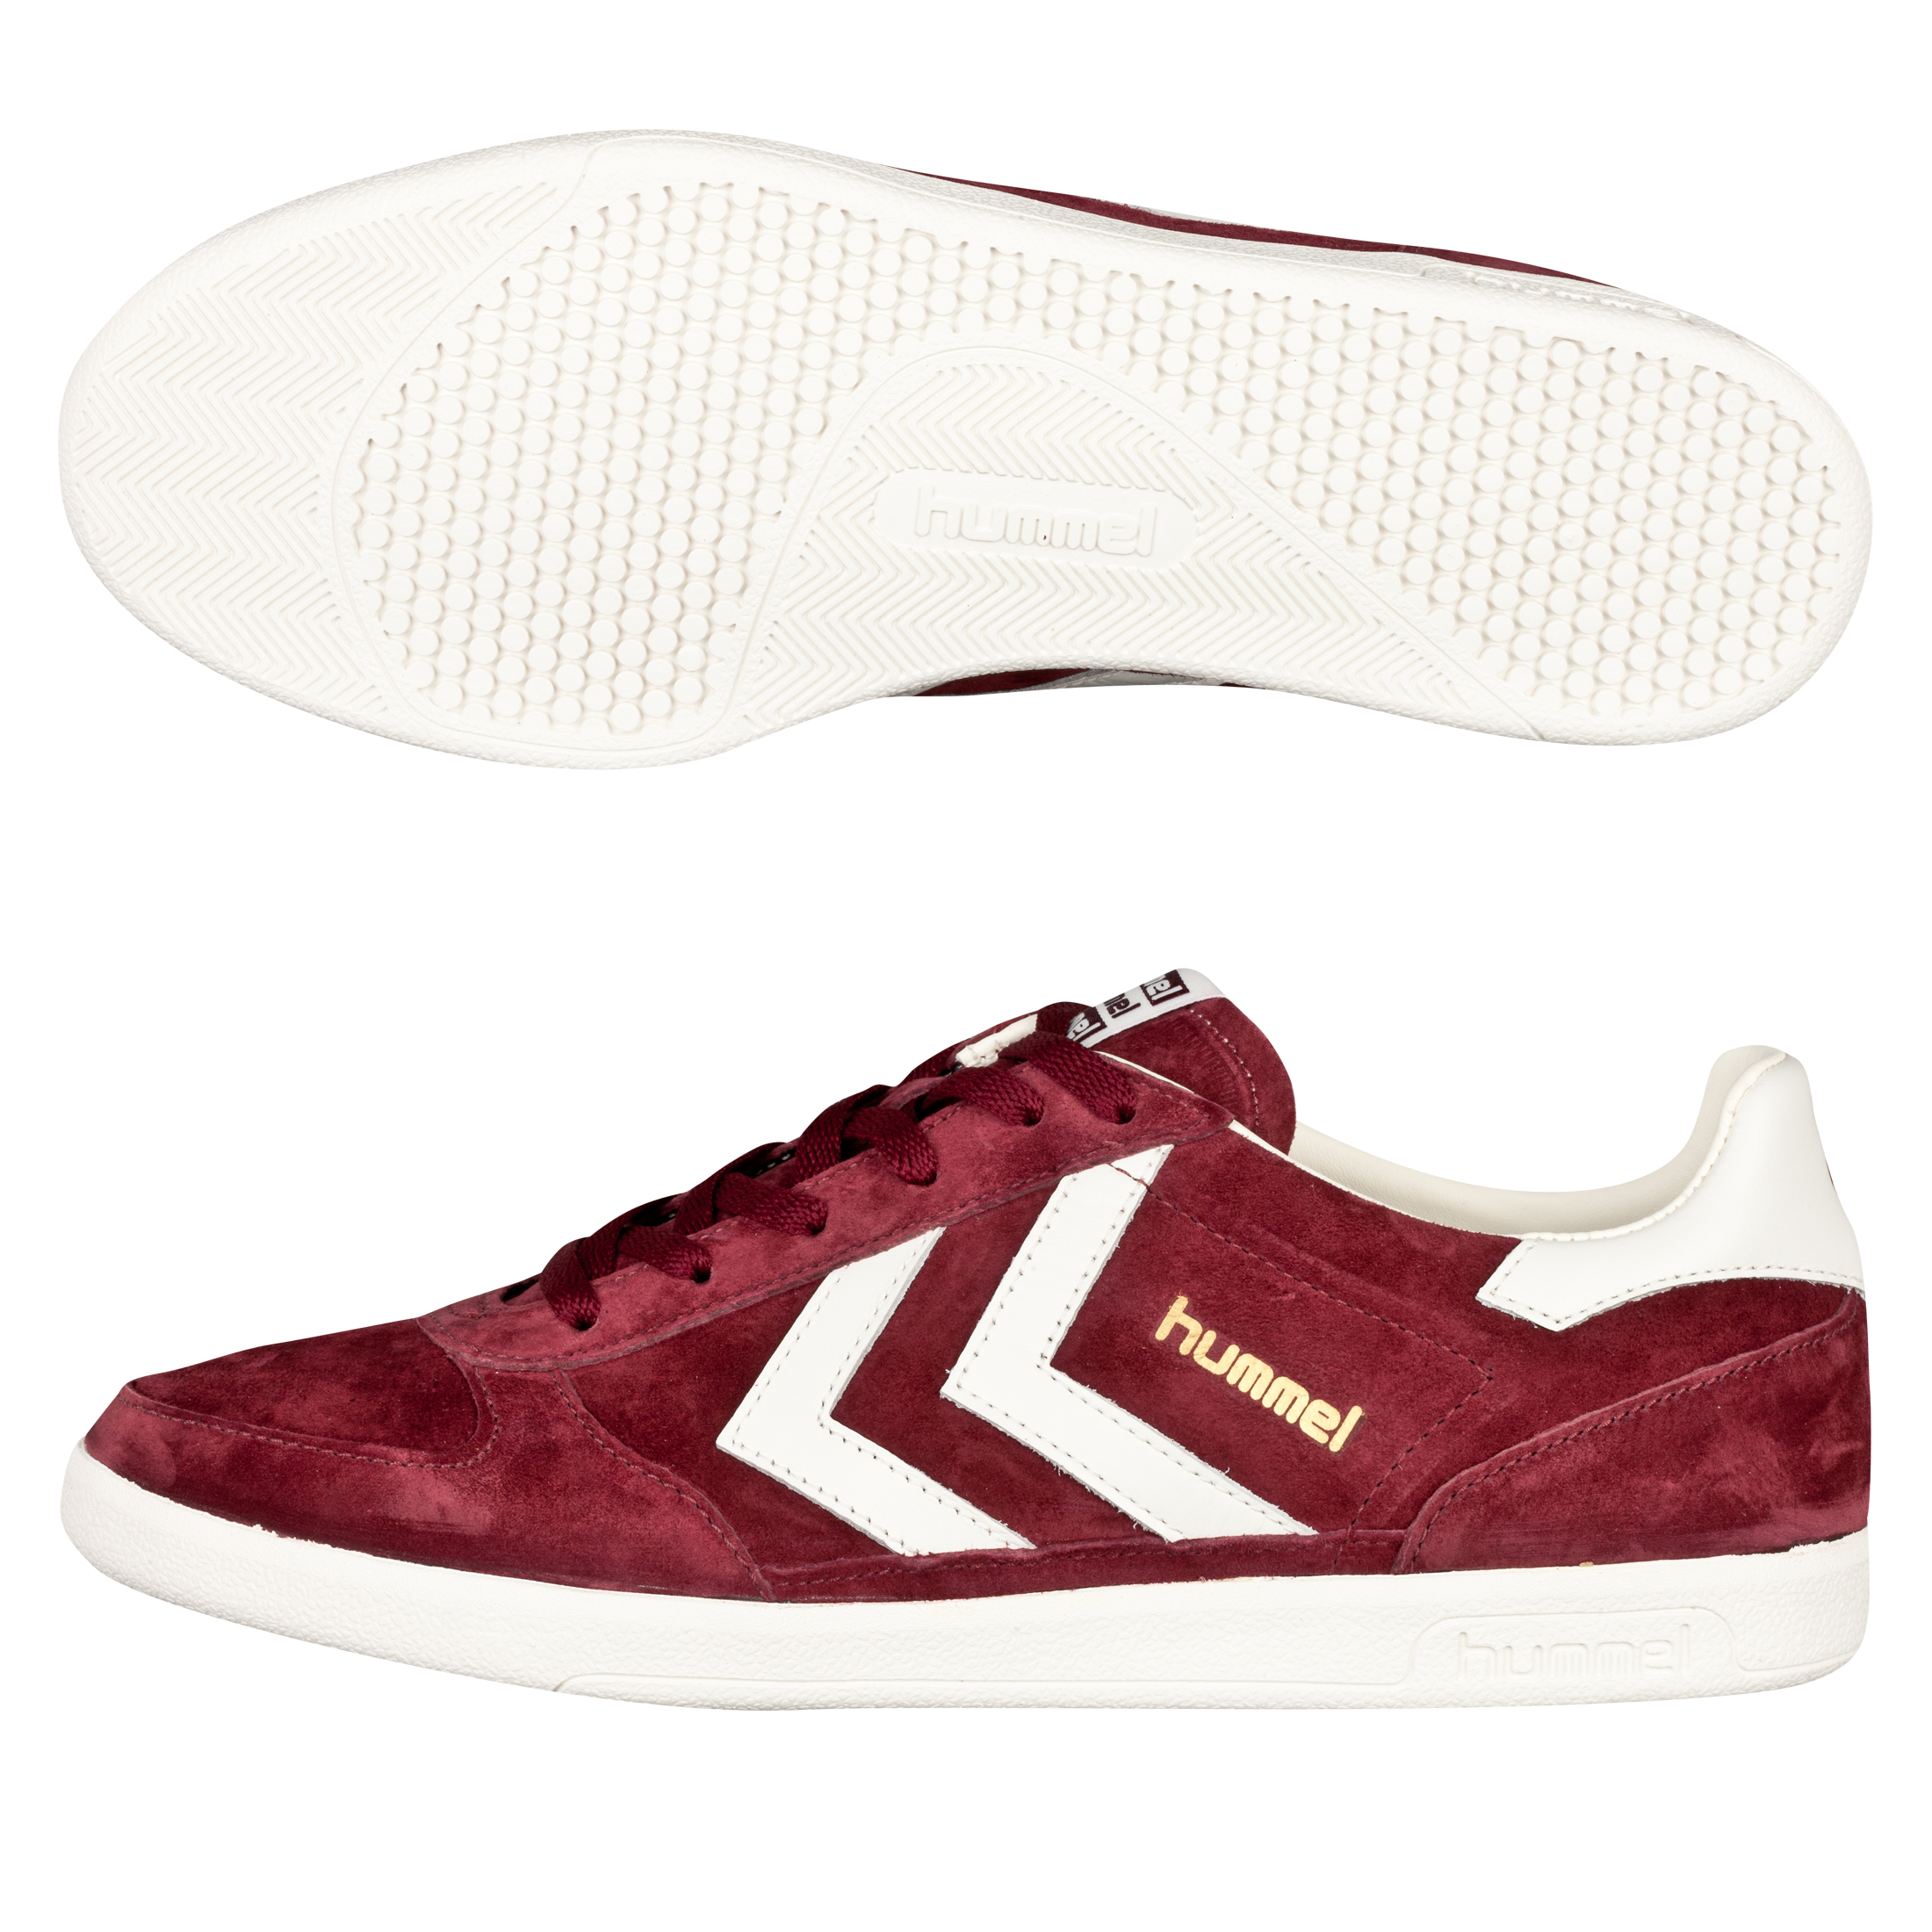 Hummel Victory Low Trainers - Tawney Port/Pristine White